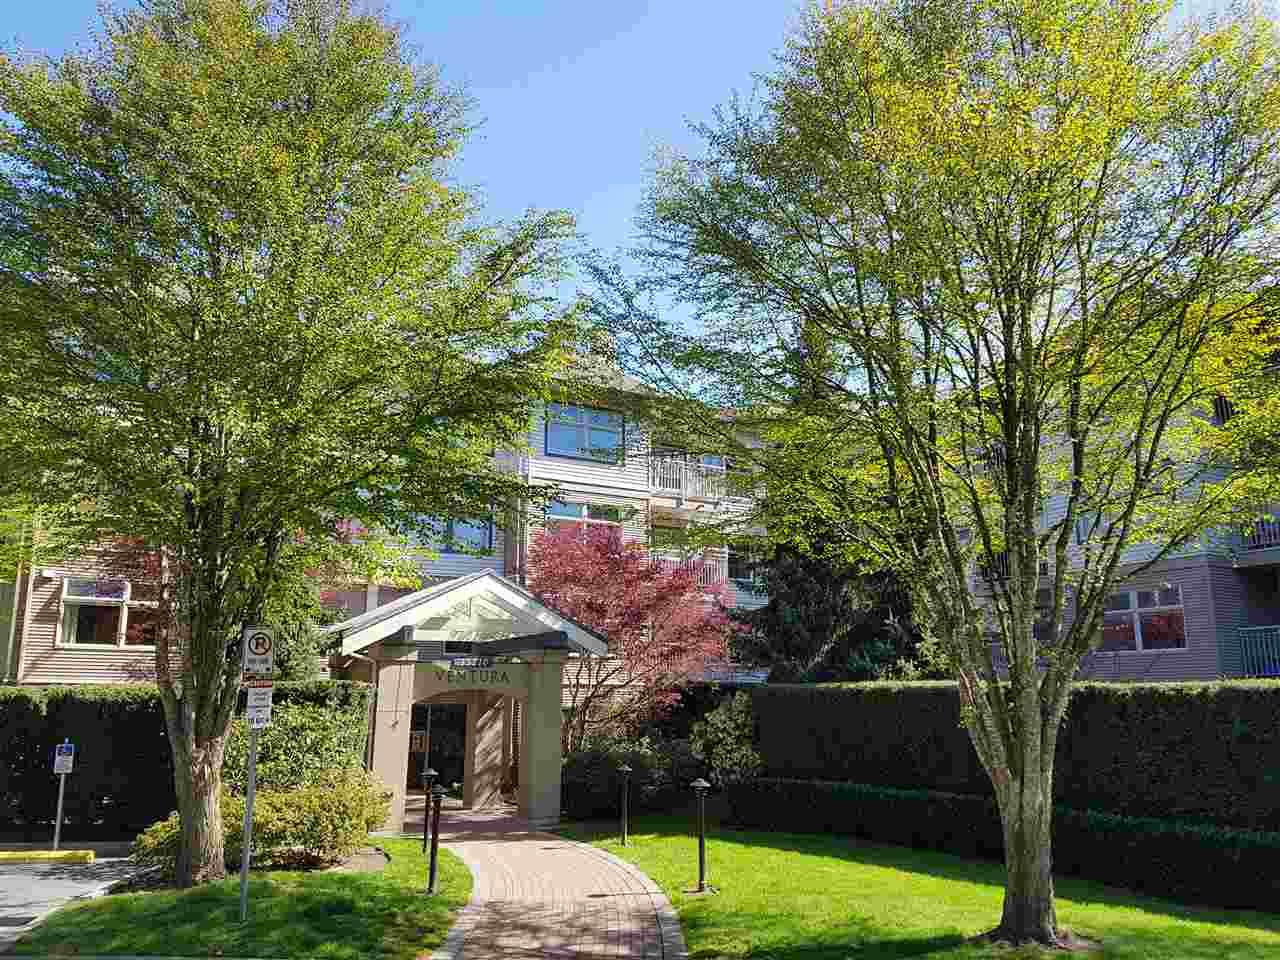 """Main Photo: 406 15210 GUILDFORD Drive in Surrey: Guildford Condo for sale in """"The Boulevard Club"""" (North Surrey)  : MLS®# R2259628"""